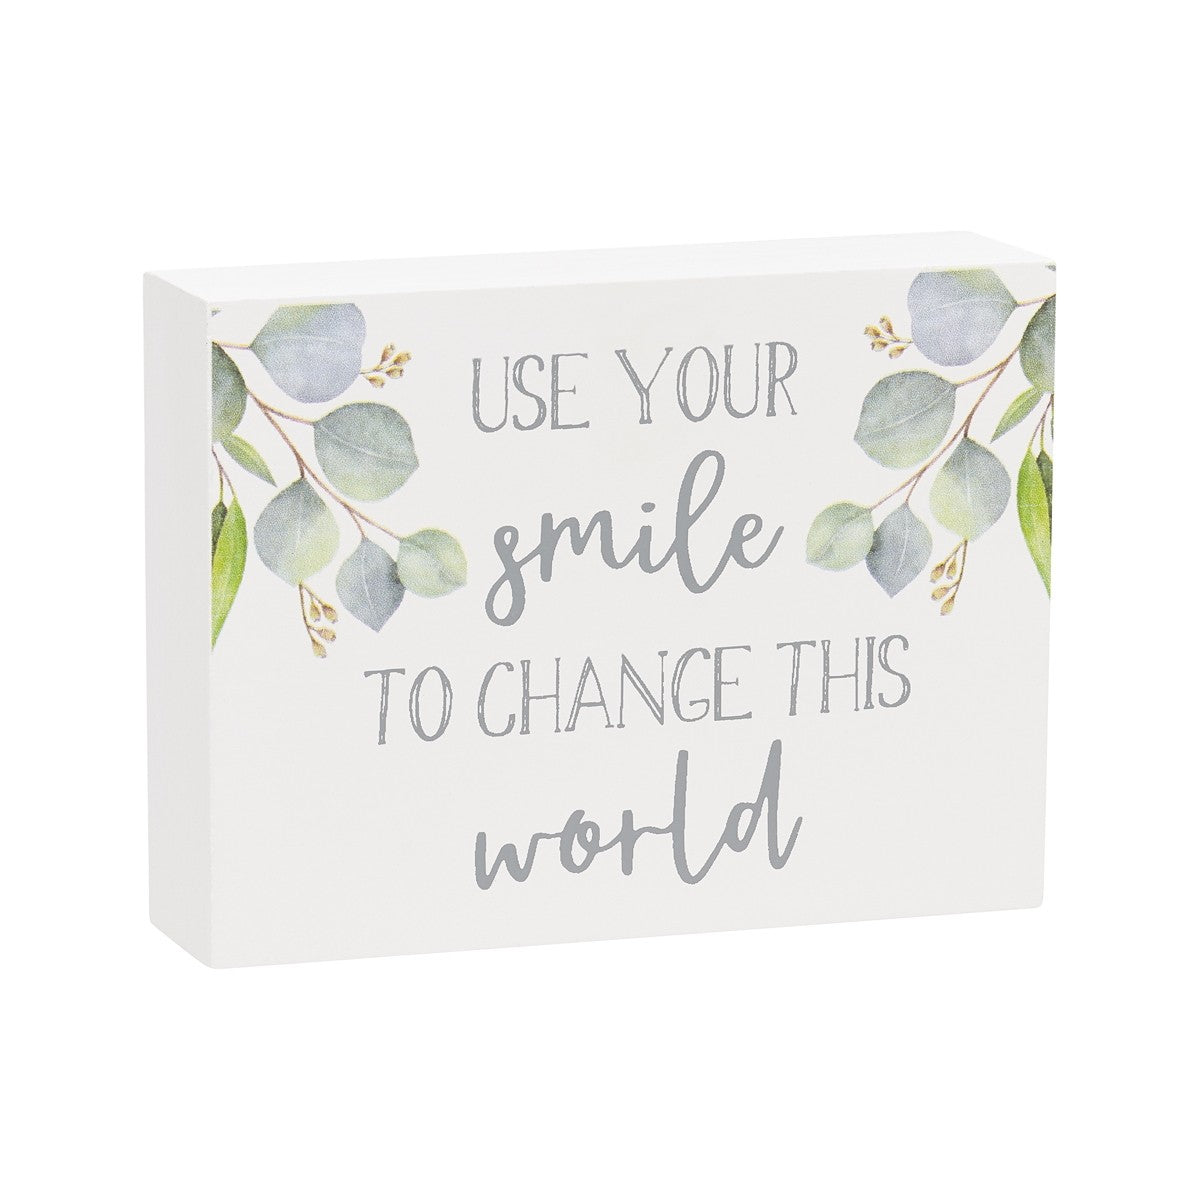 Let your Smile Wood Block